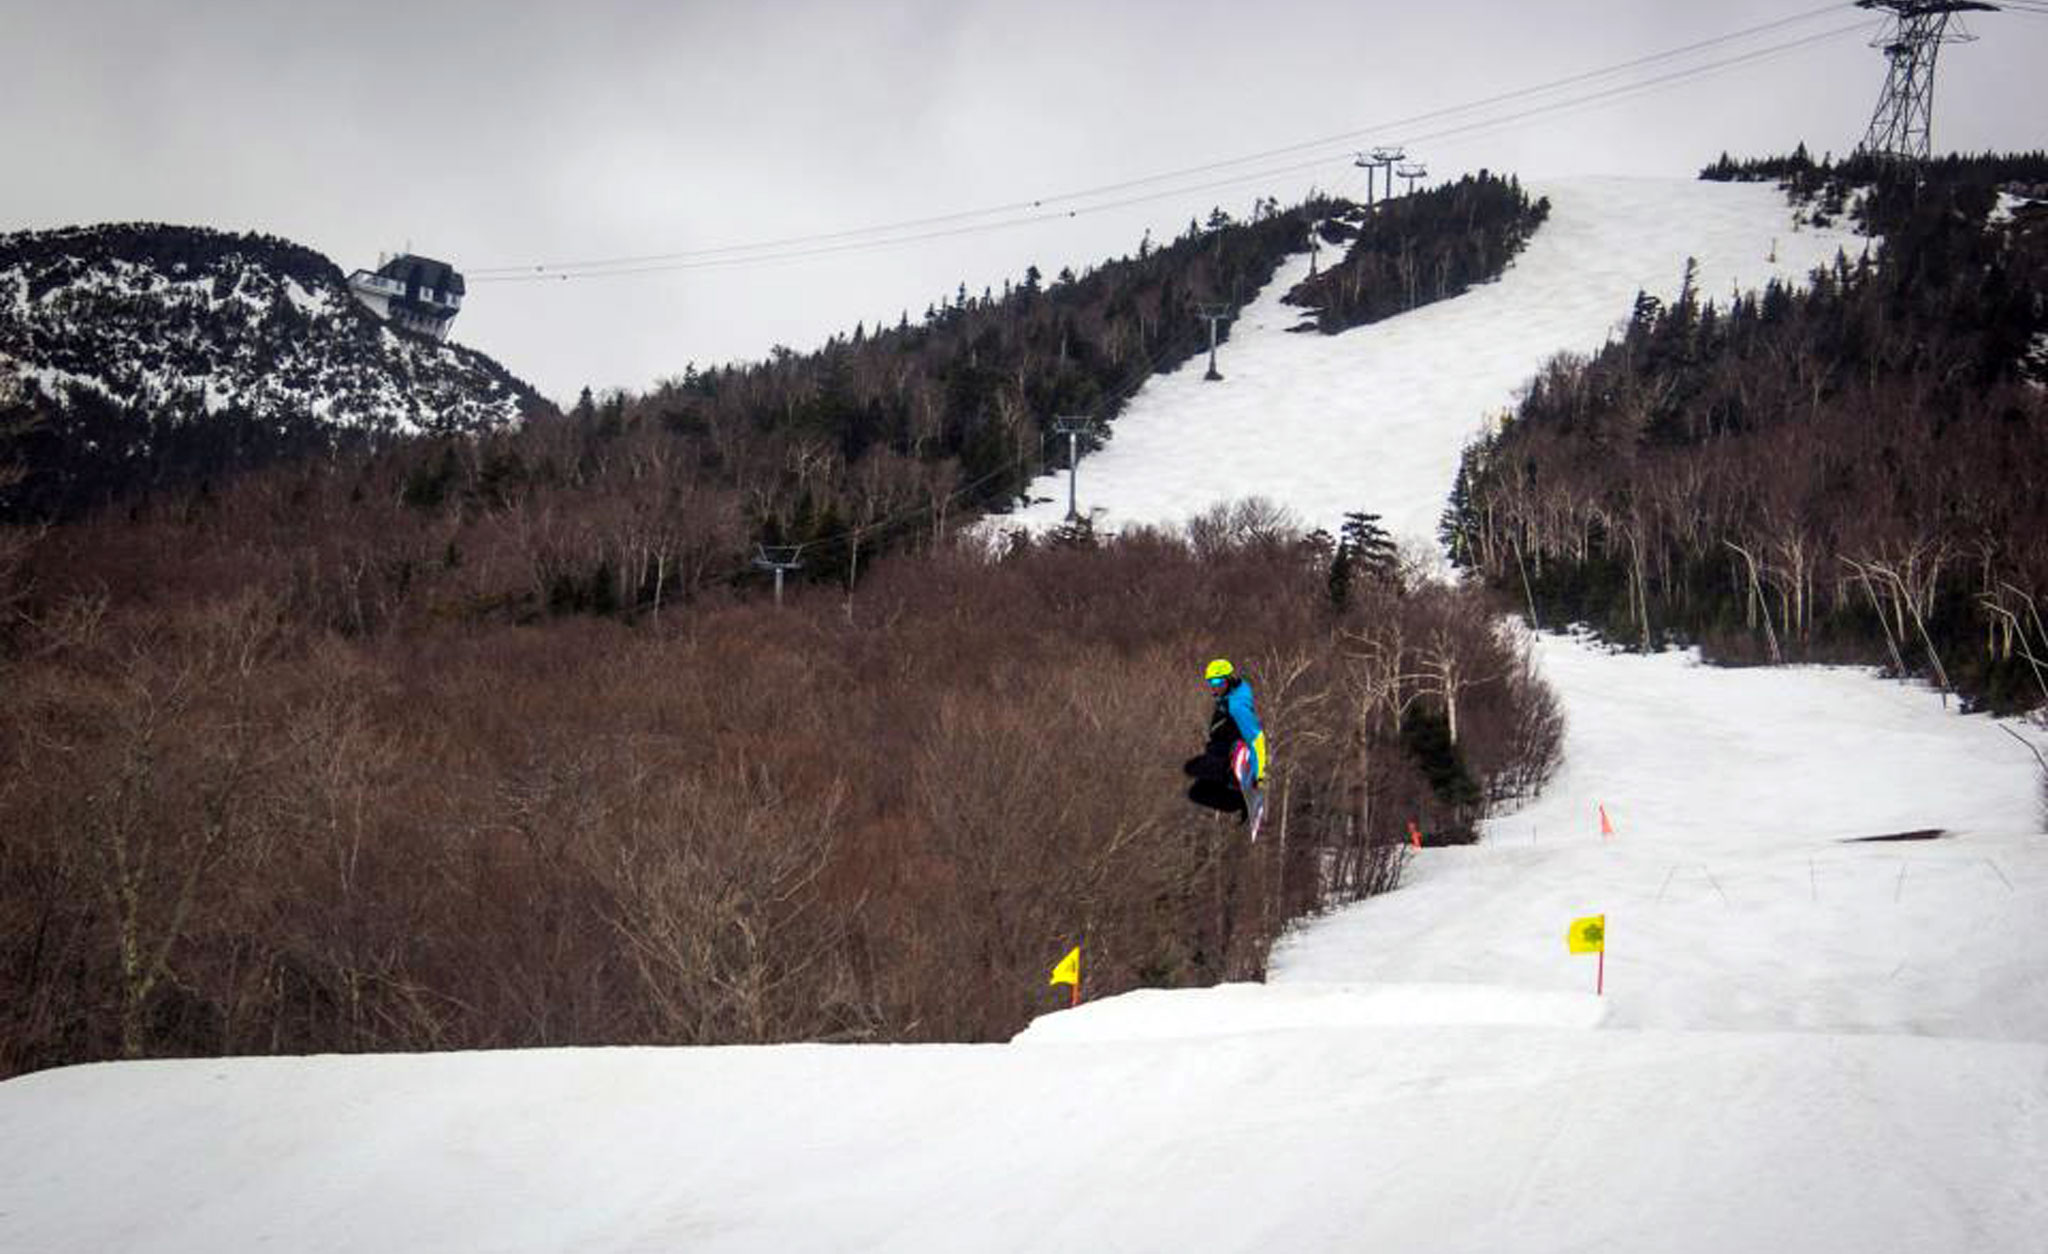 Jay Peak will remain open weekends through May 5, with tentative plans to extend the season if snow conditions permit. The terrain park will stay open through May 5 as well. And it's all at a discounted rate: Spring lift tickets have been lowered to 55.